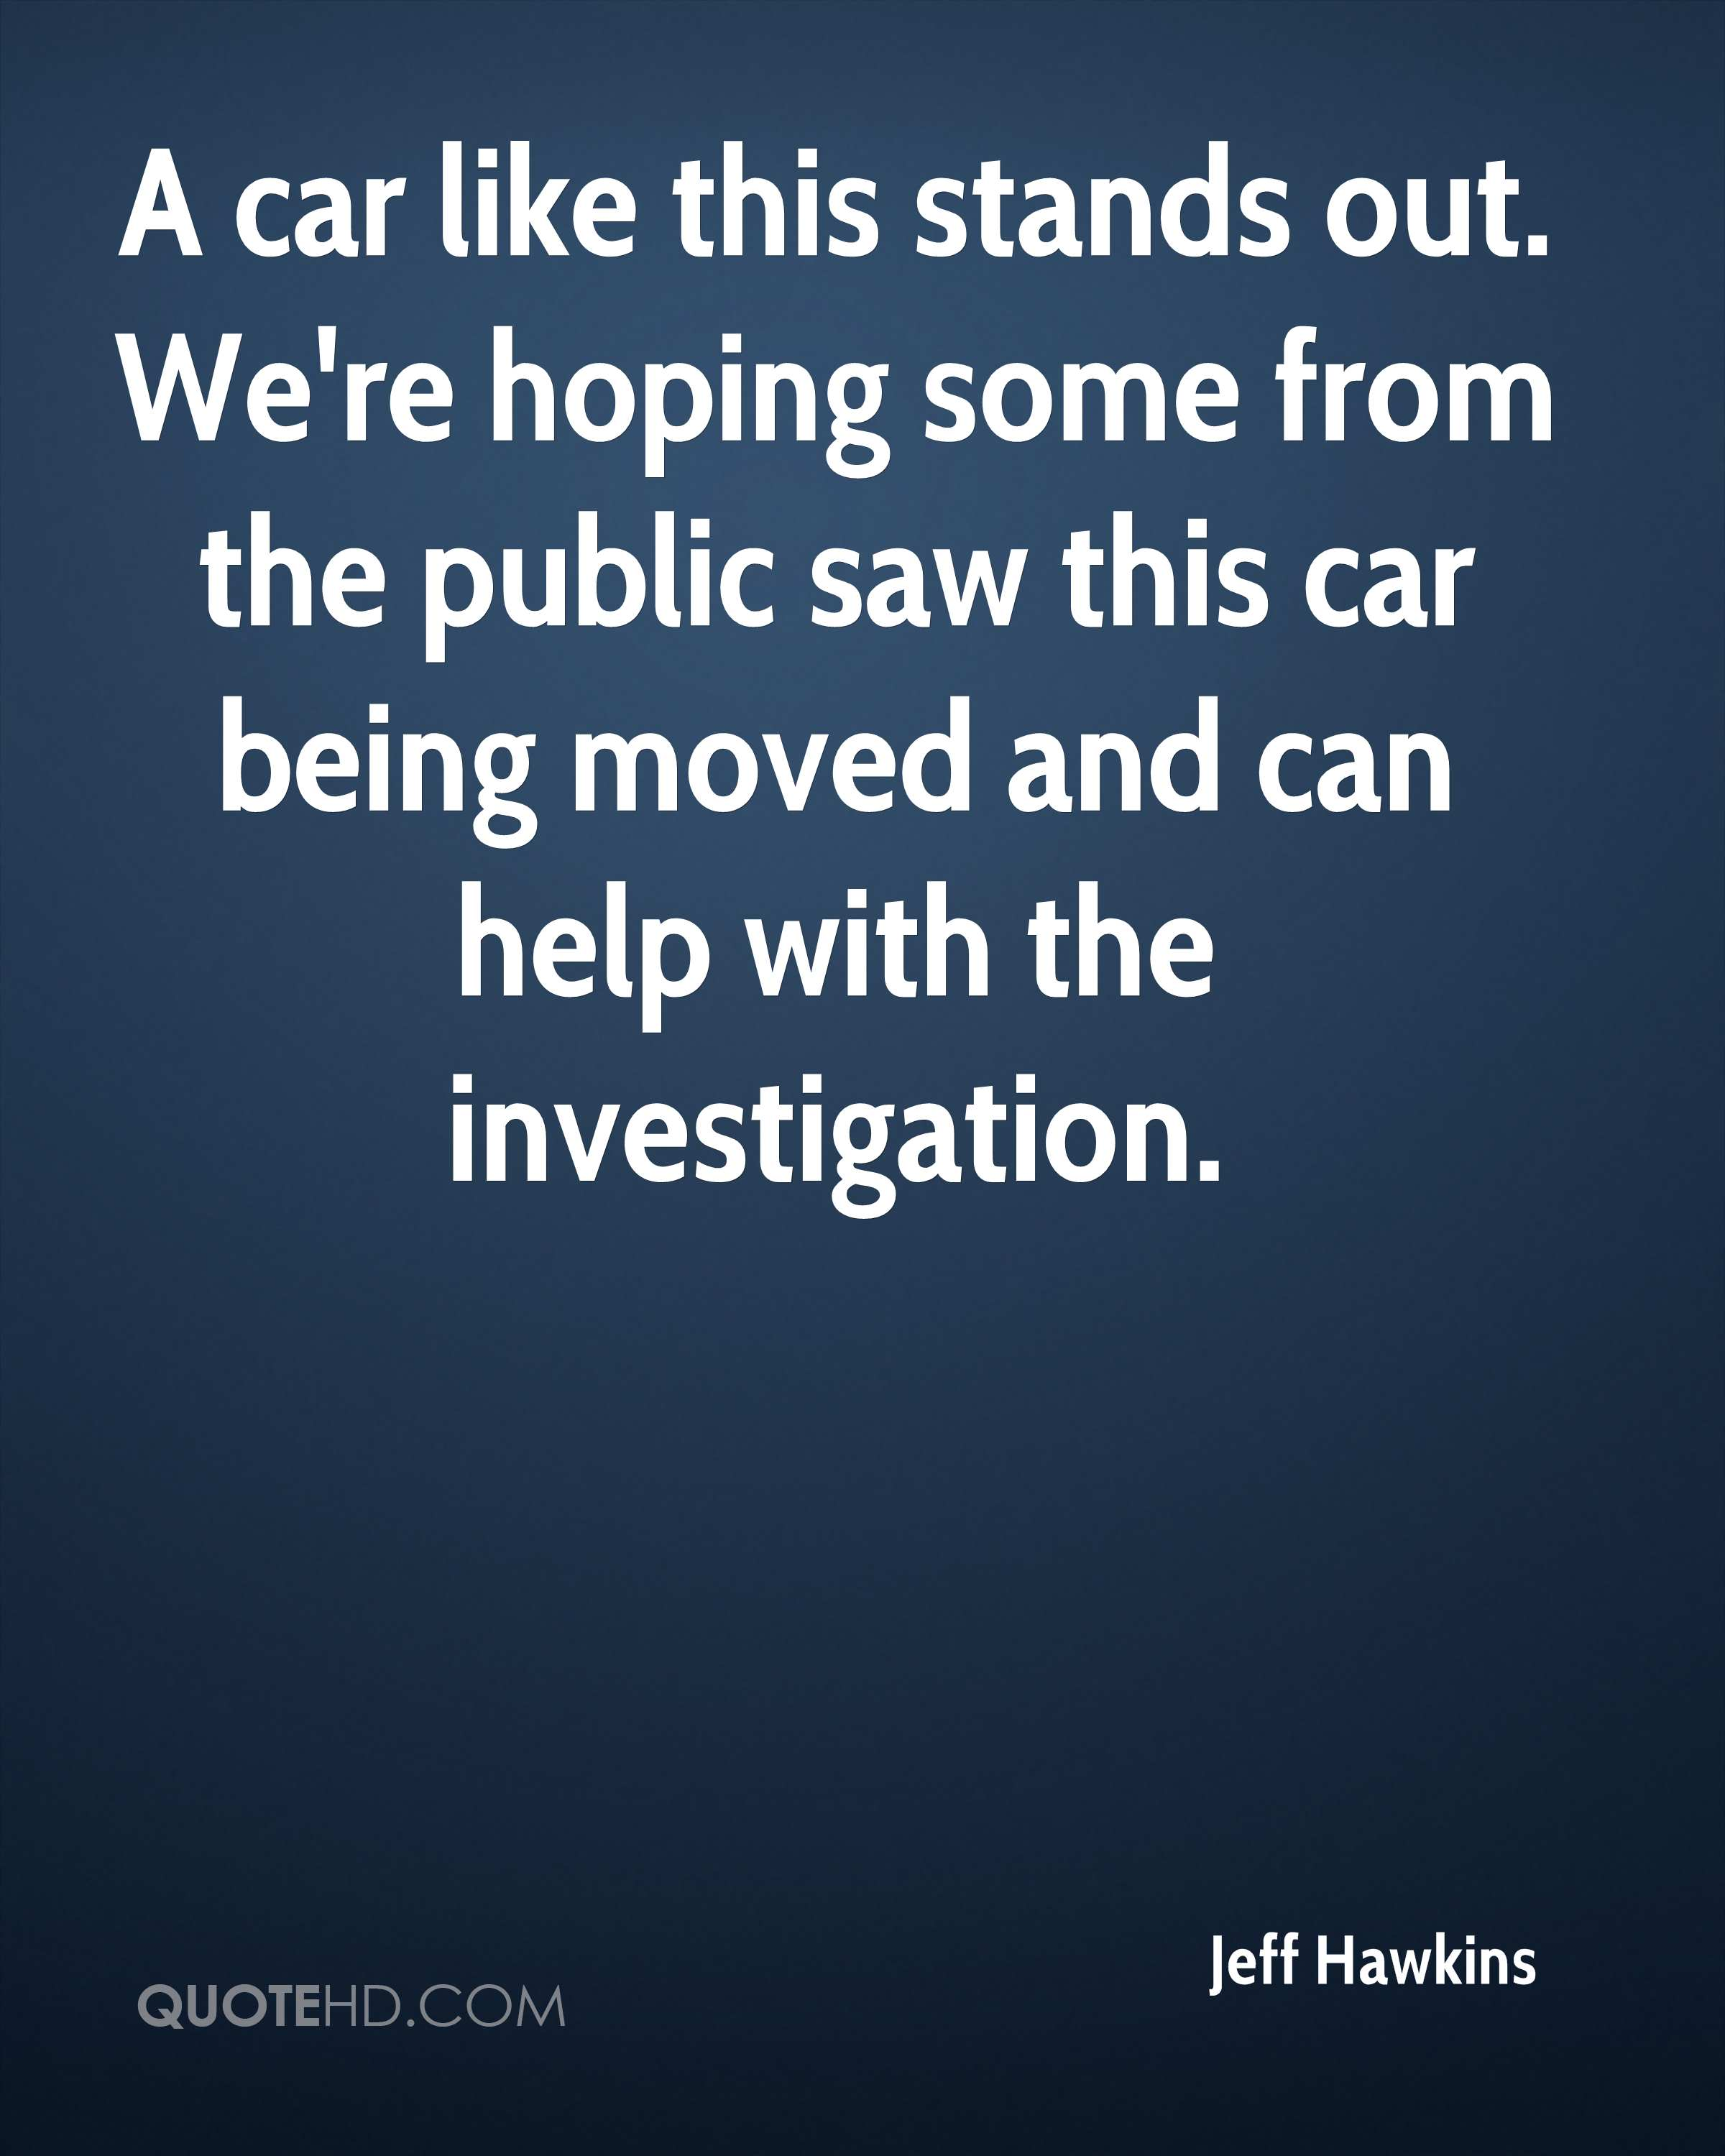 A car like this stands out. We're hoping some from the public saw this car being moved and can help with the investigation.